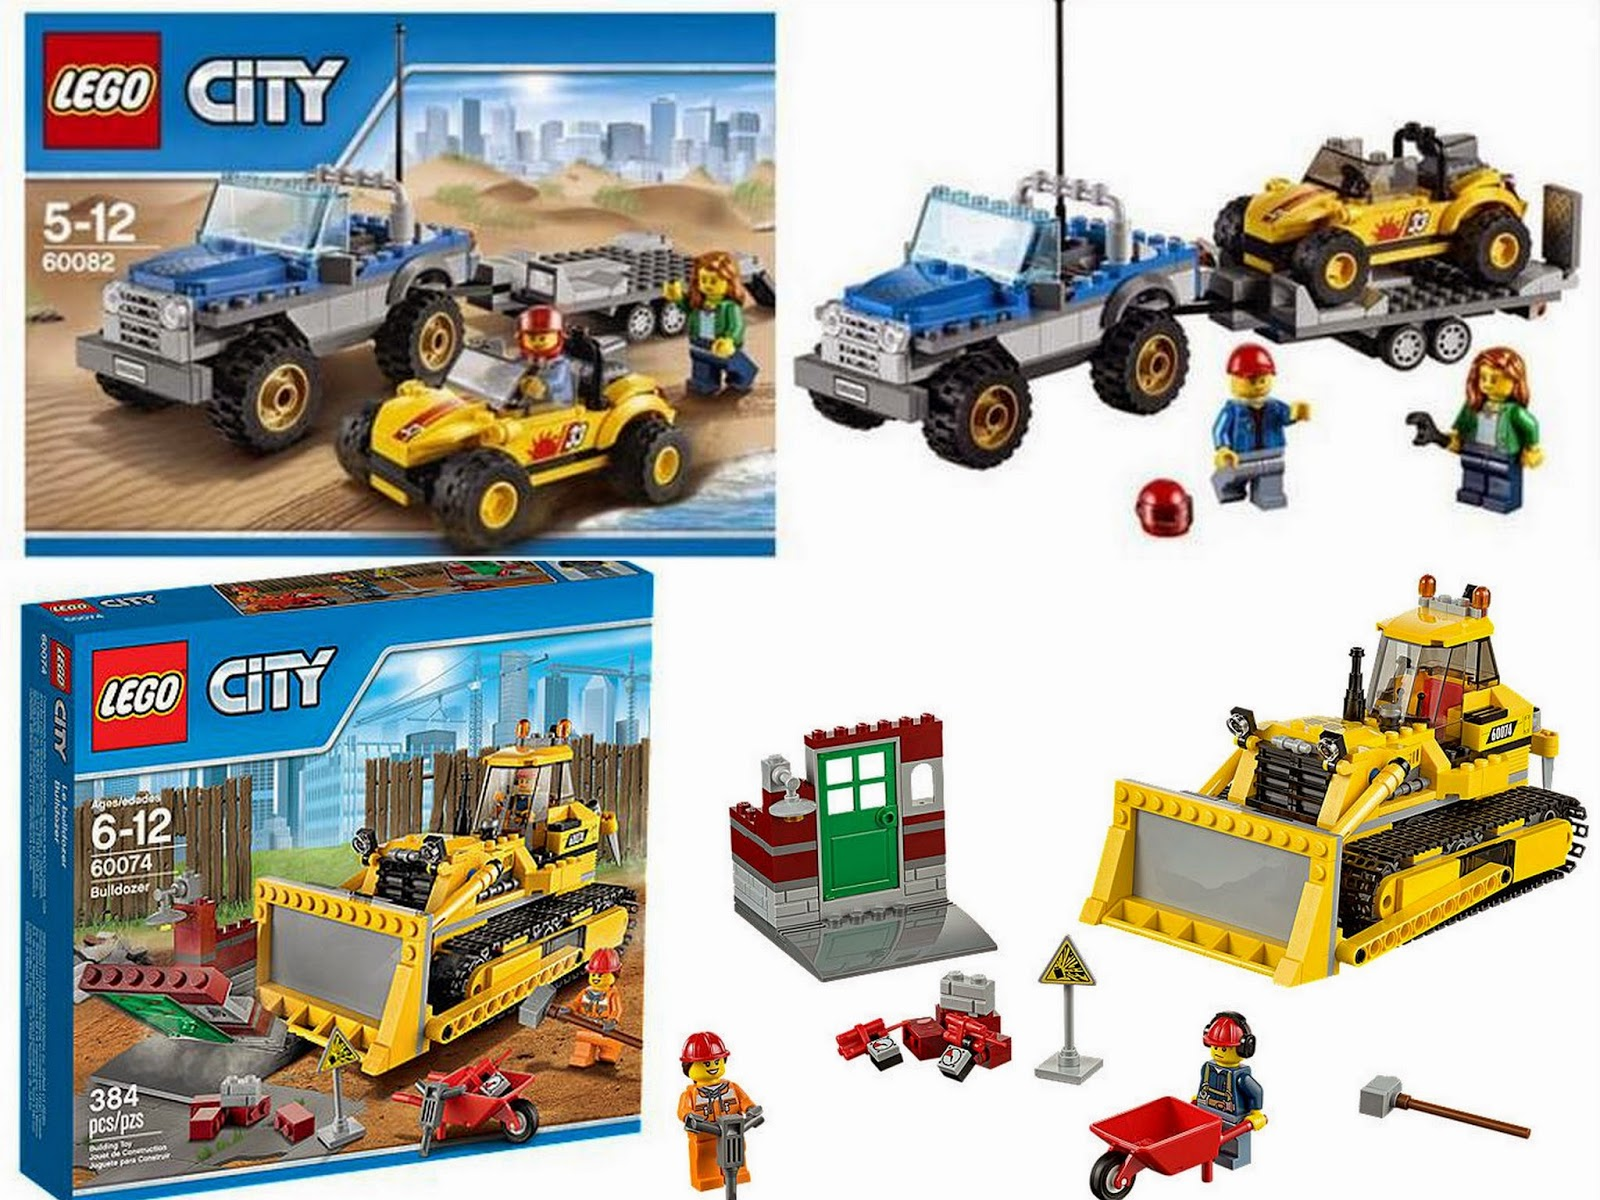 LEGO City women builder and female mechanic